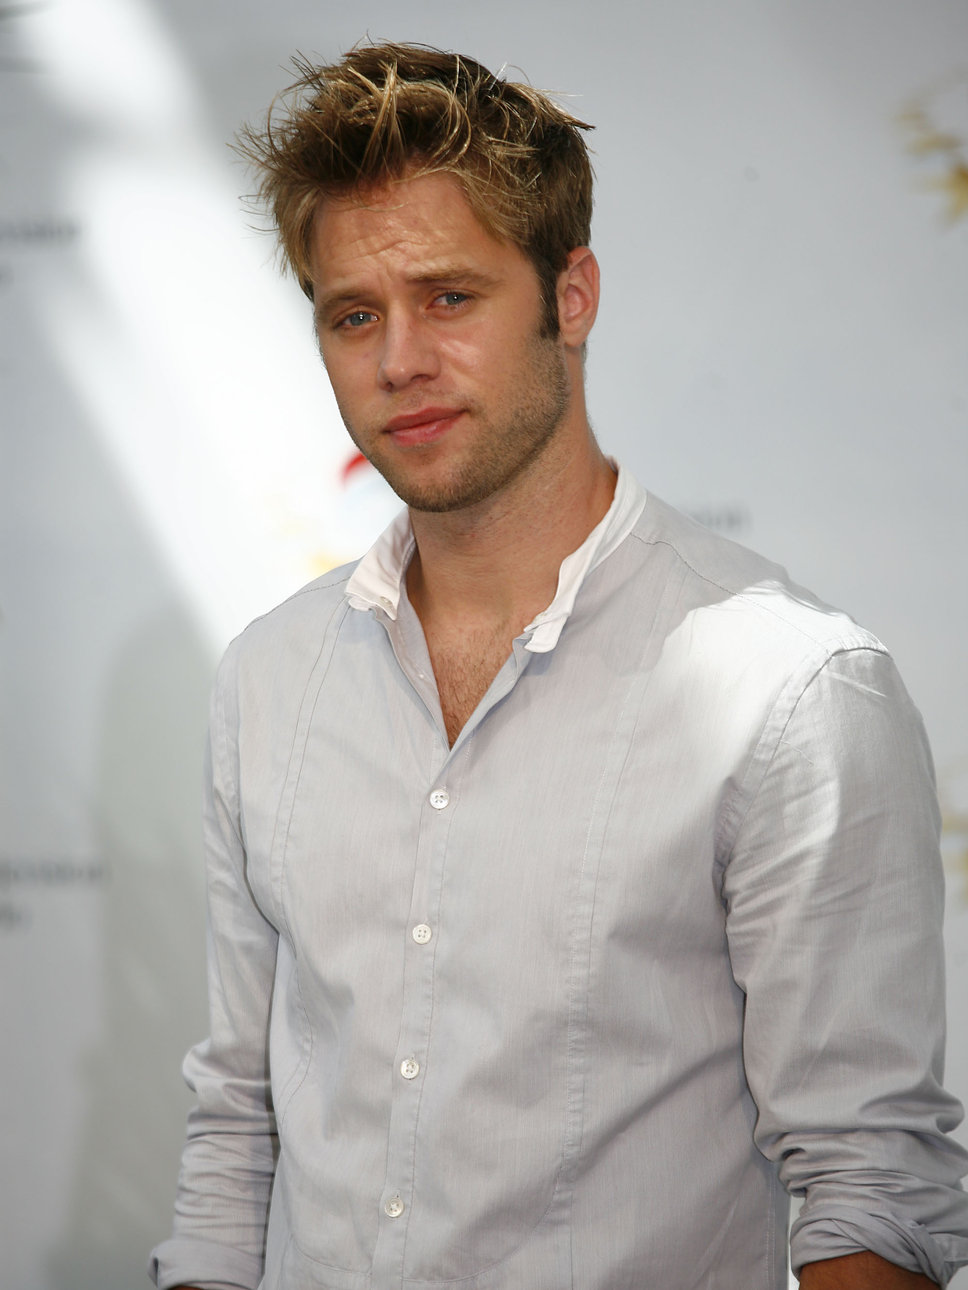 shaun sipos married